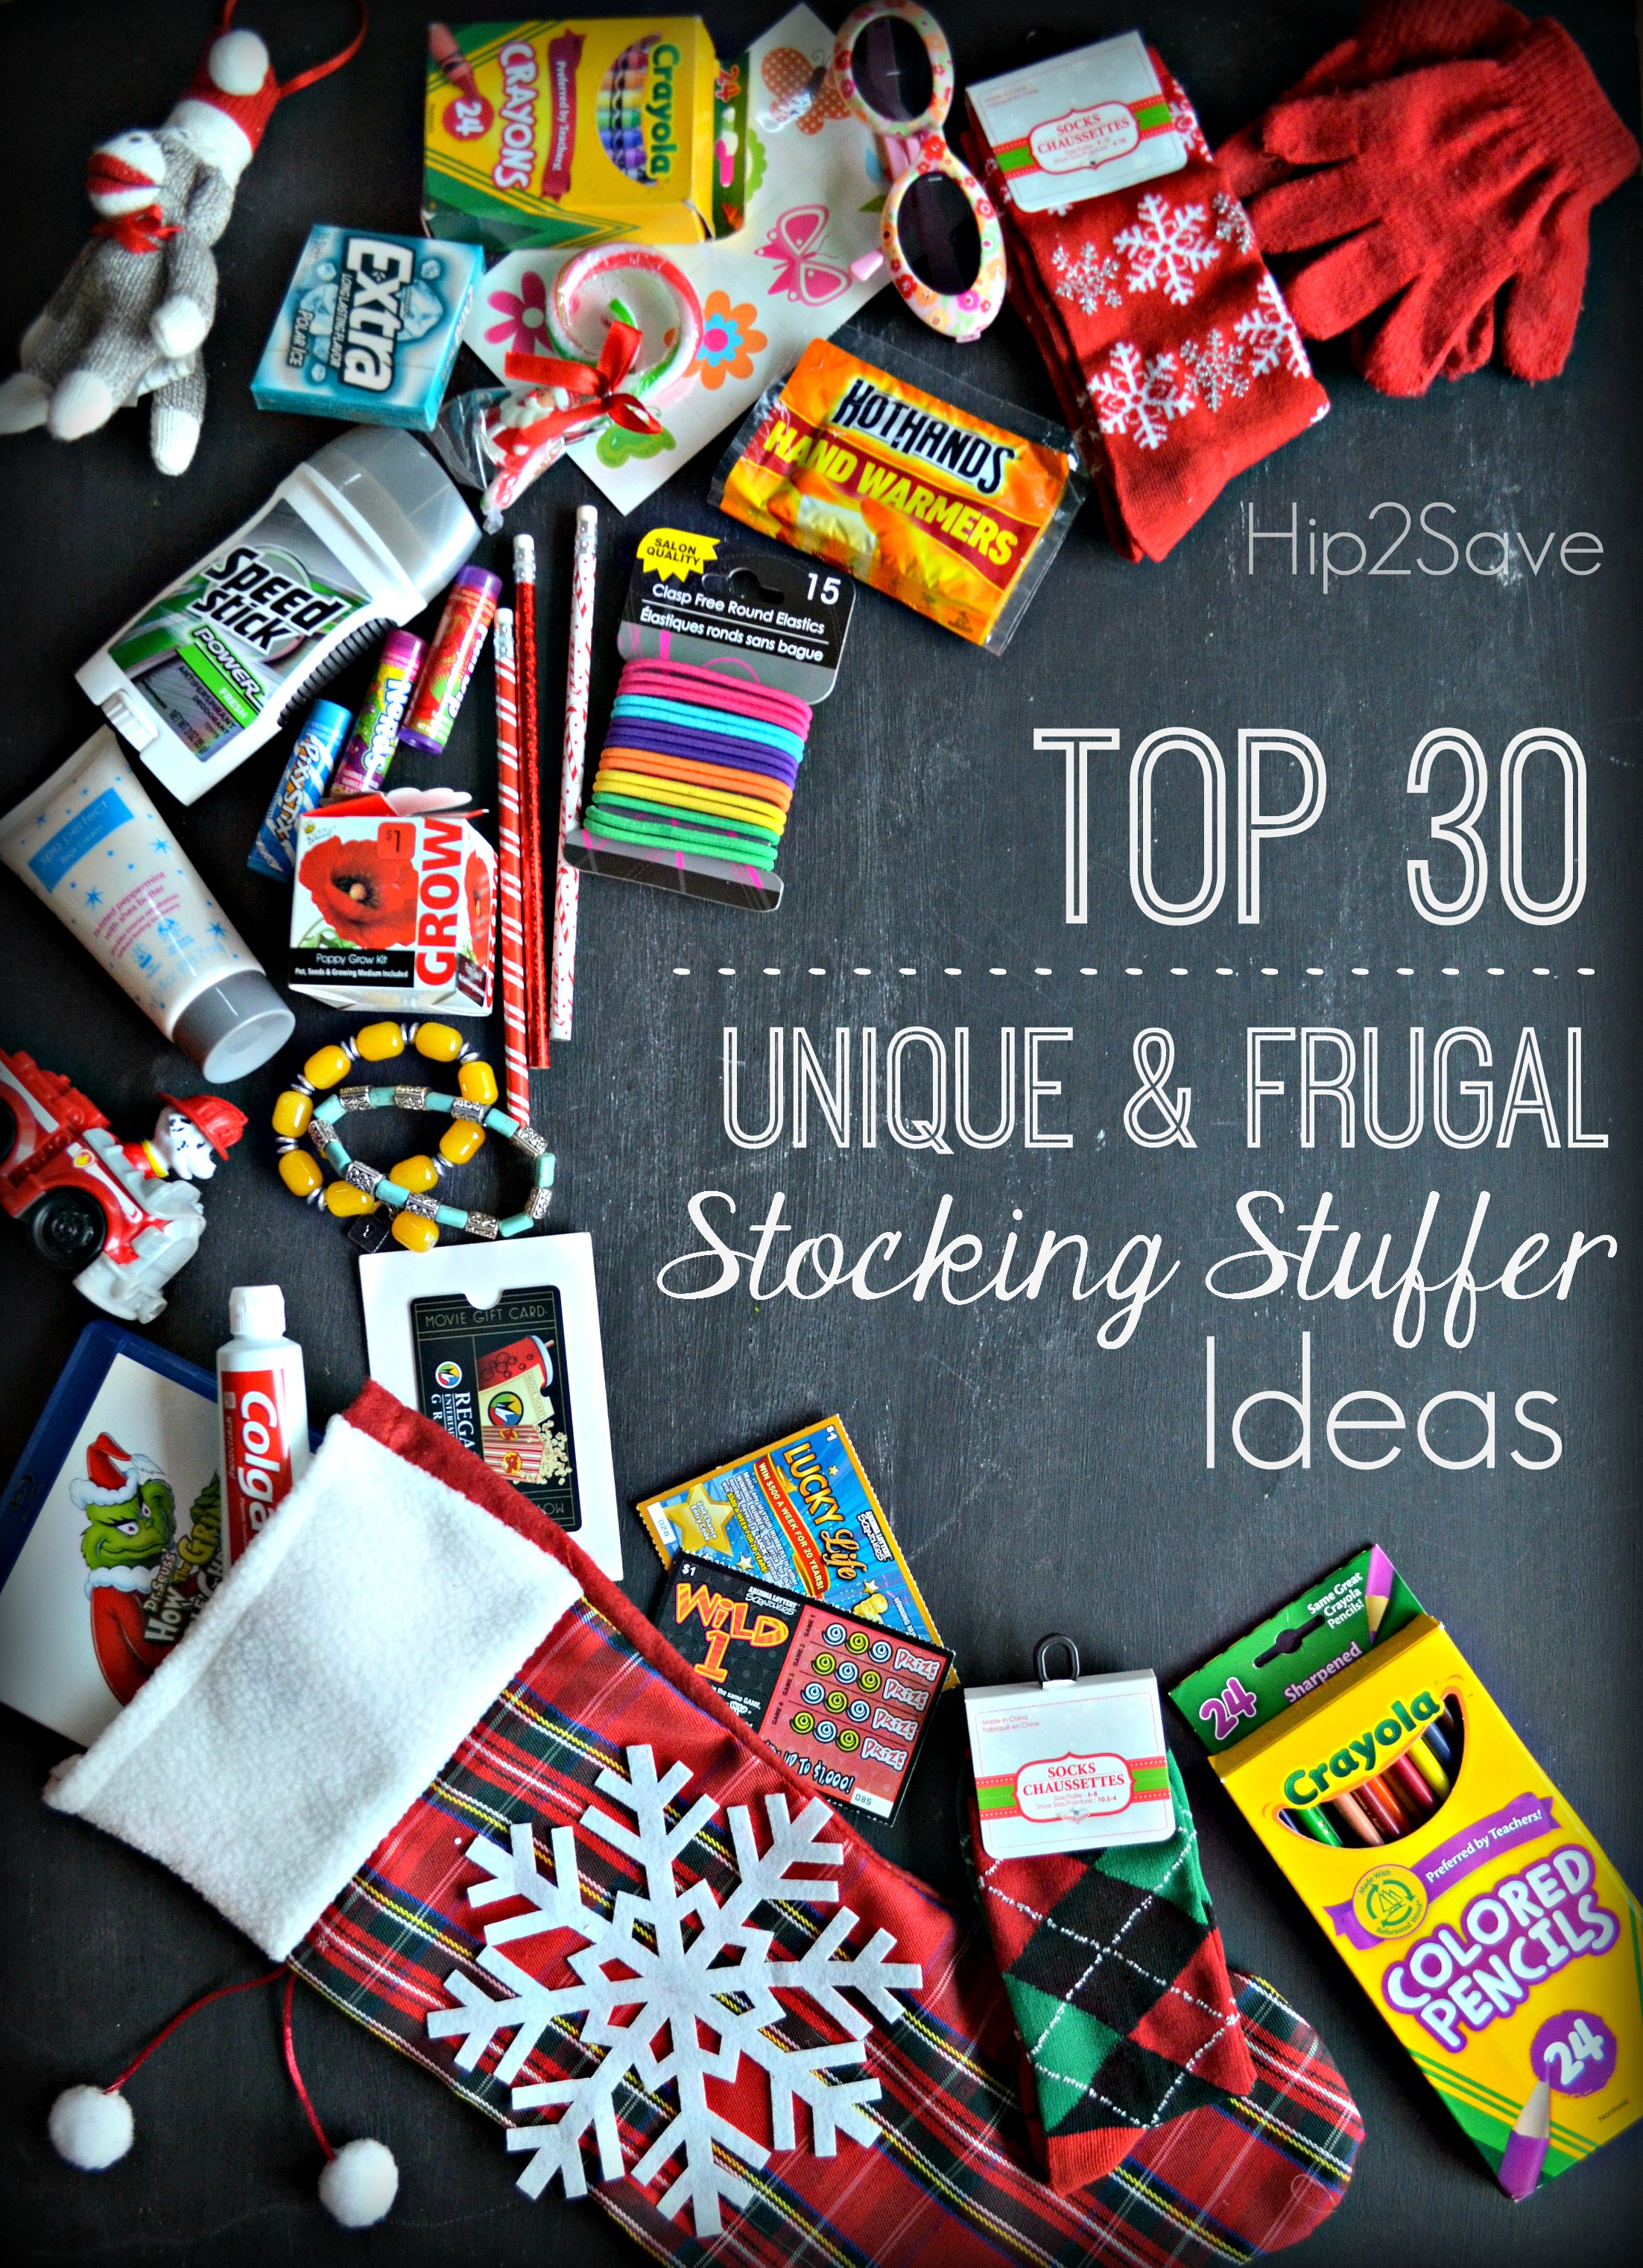 Top 30 Unique  Frugal Stocking Stuffer Ideas - Hip2Save-1834